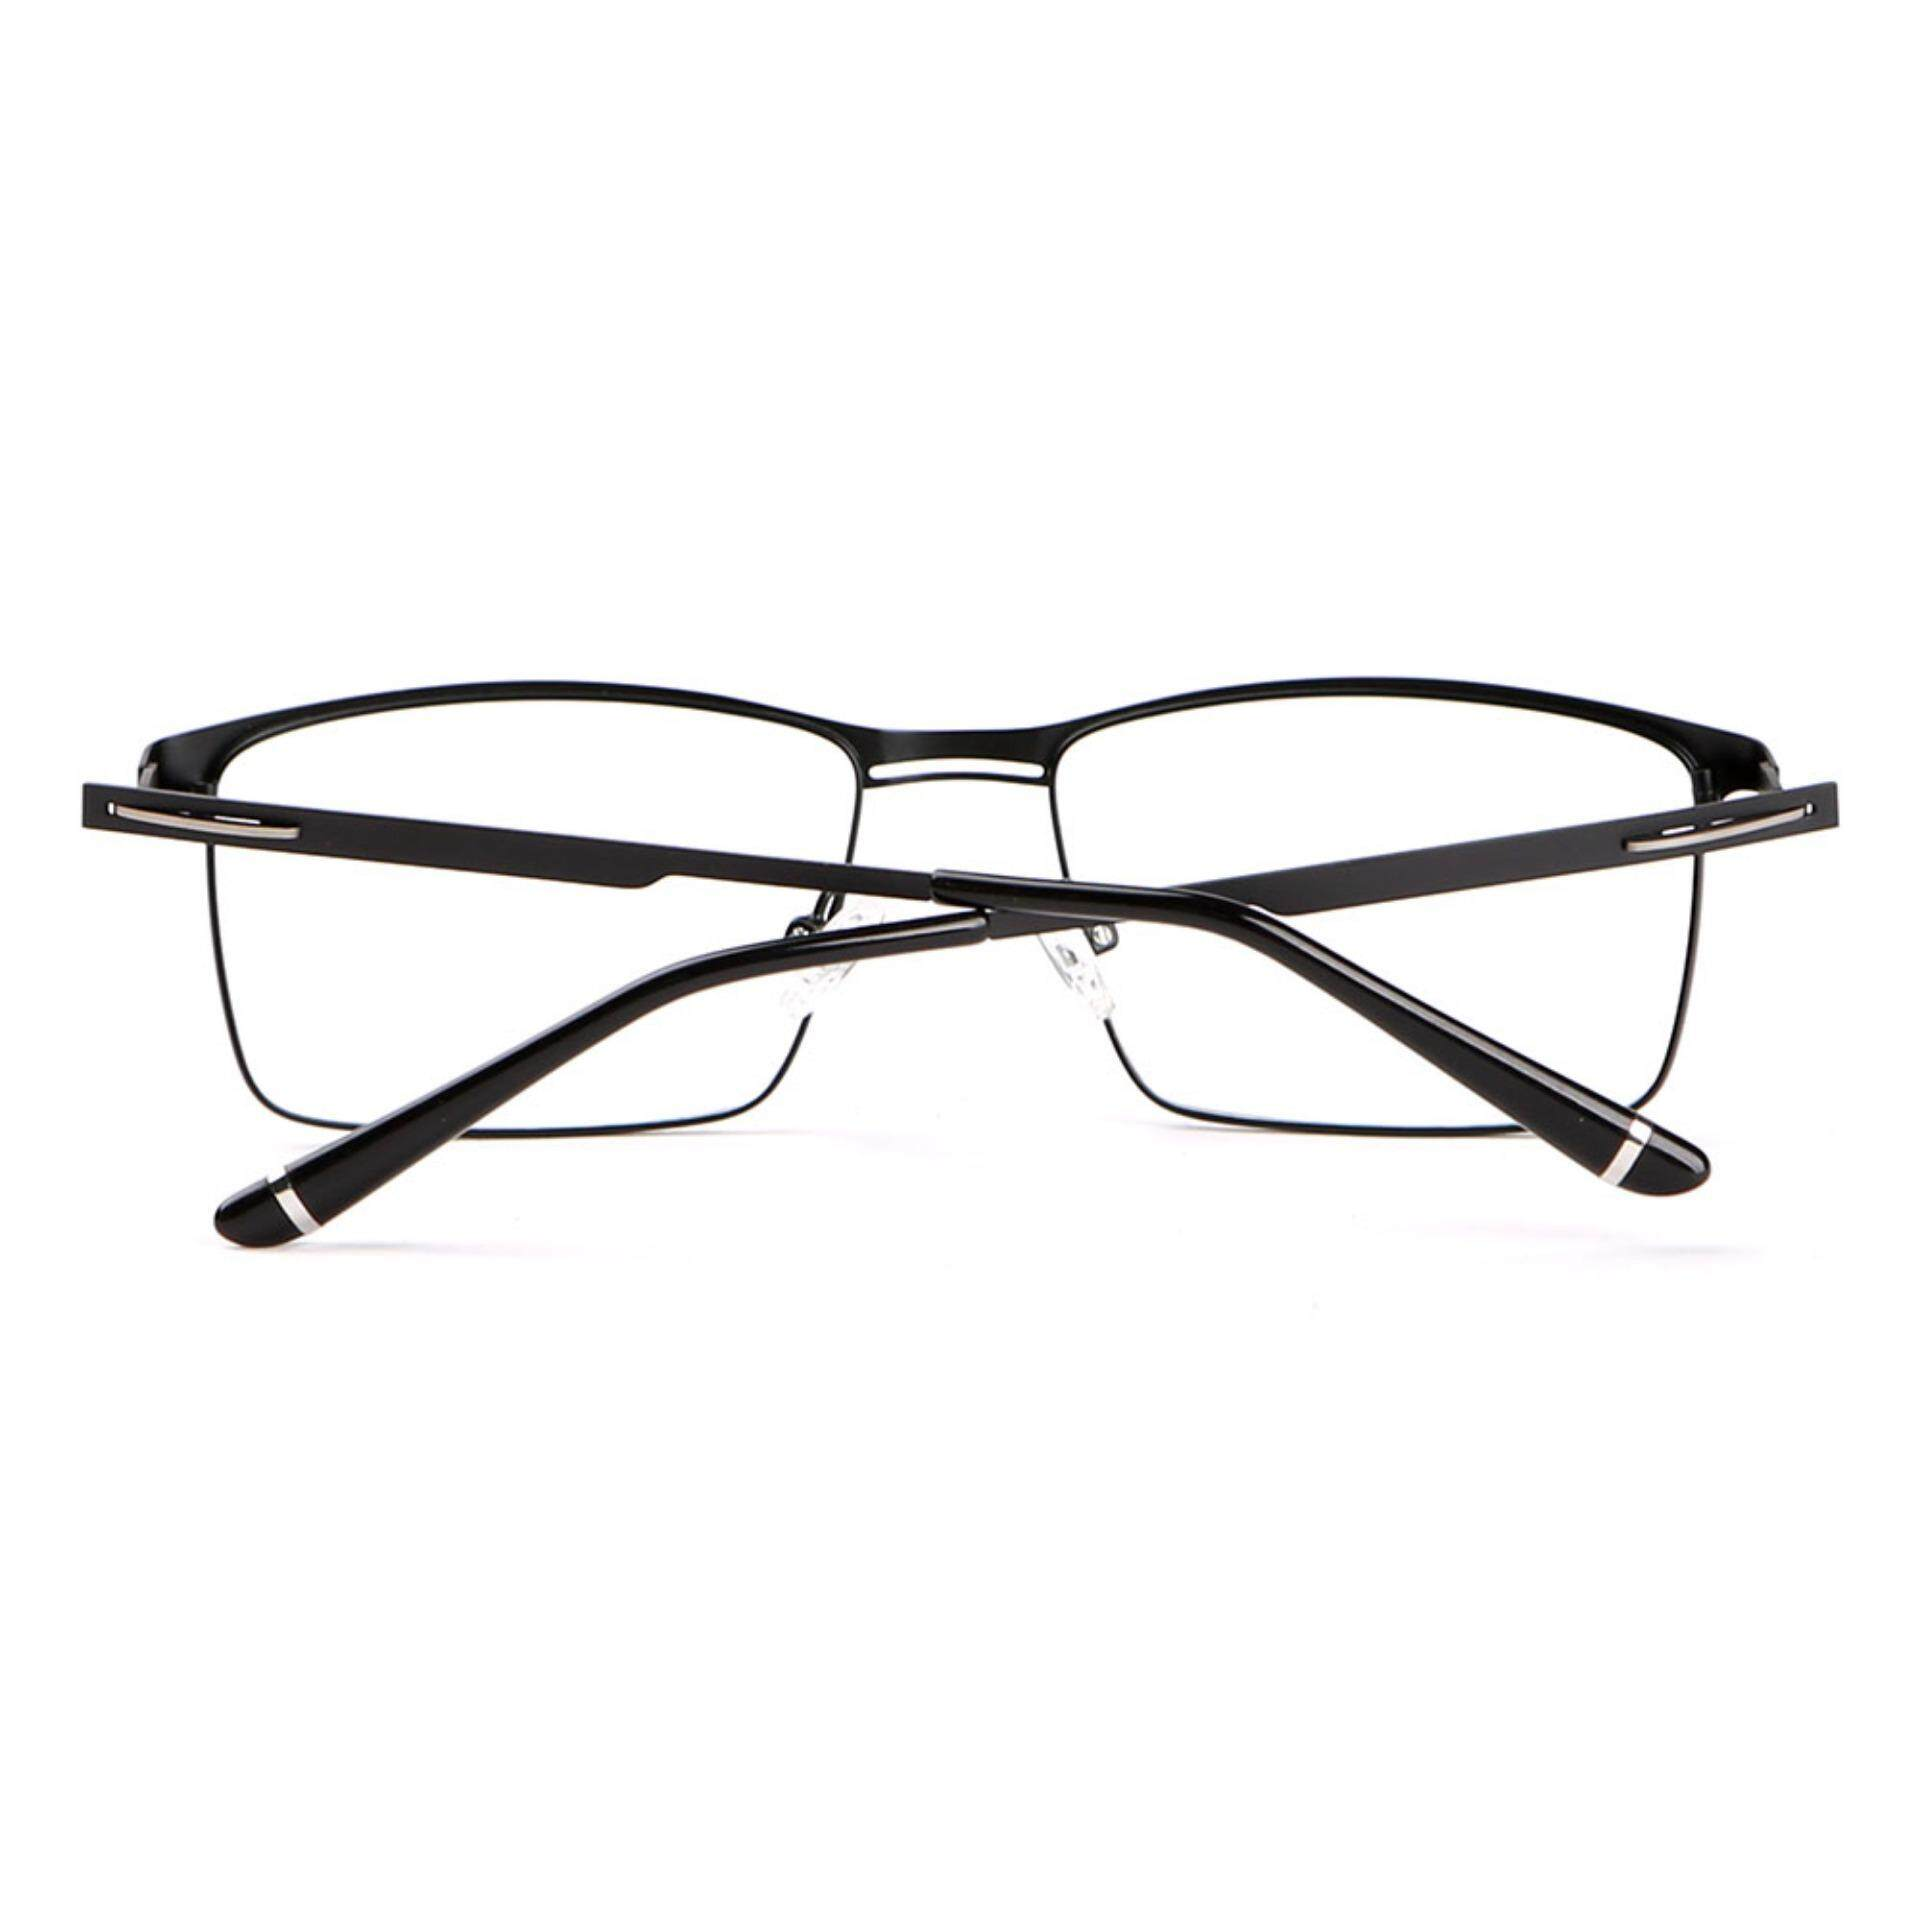 Stallane Optical Myopia Frame Metal Glasses Fashion Spectacle Eyewear Business Eyeglasses for Men (Black)